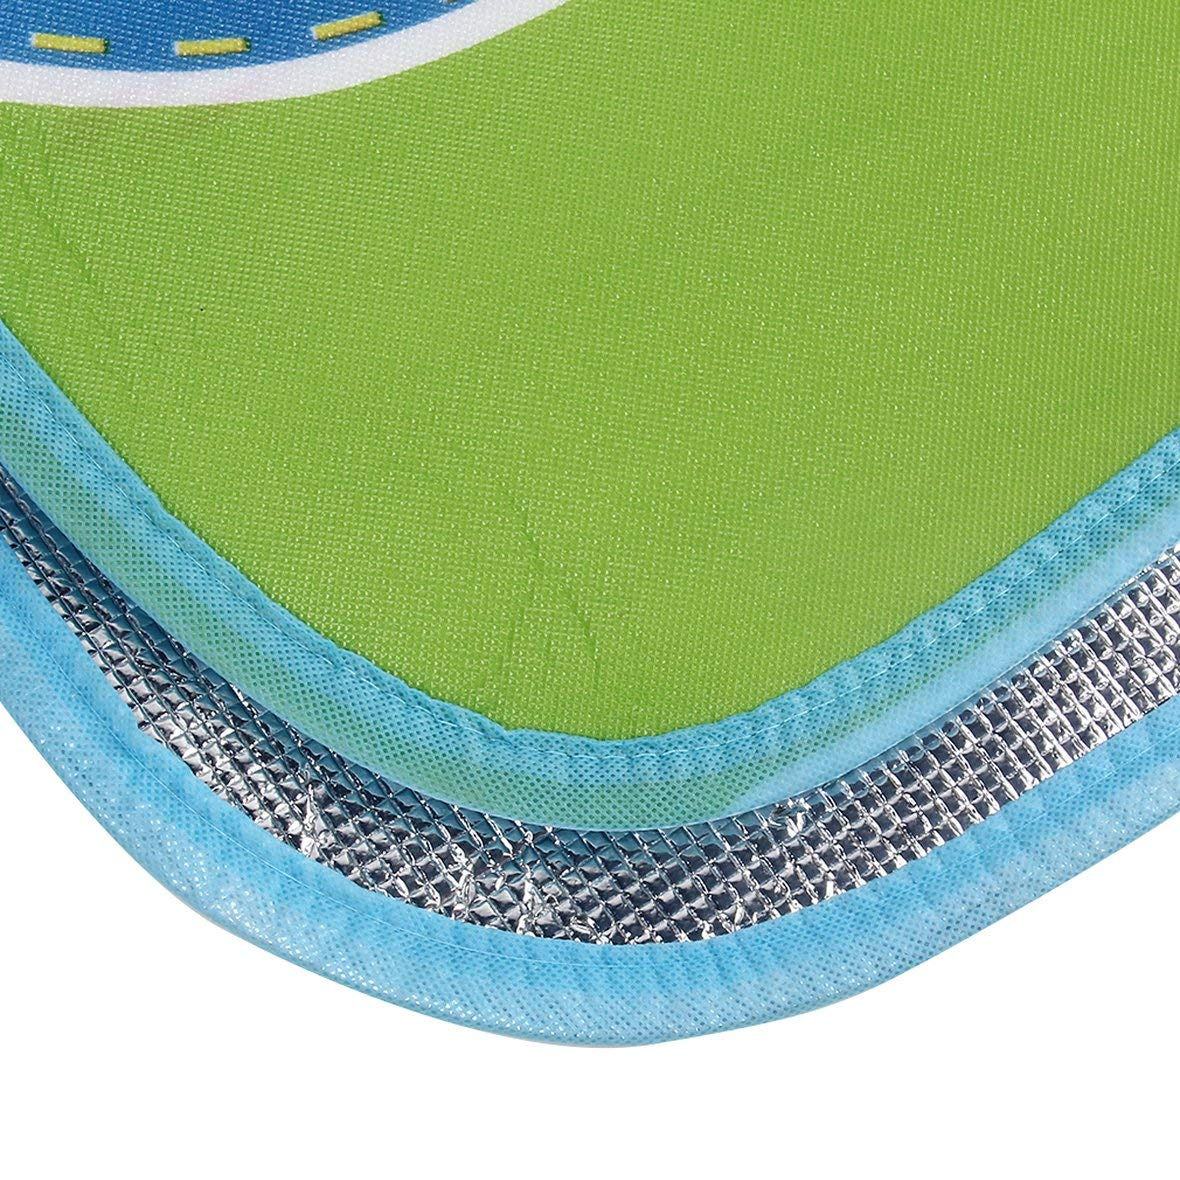 Tivolii Multi-color Flexible and Soft Hygienic and Safe For Kid Play Toy Creeping Mat Children in Developing Carpet Baby In Foam Rug